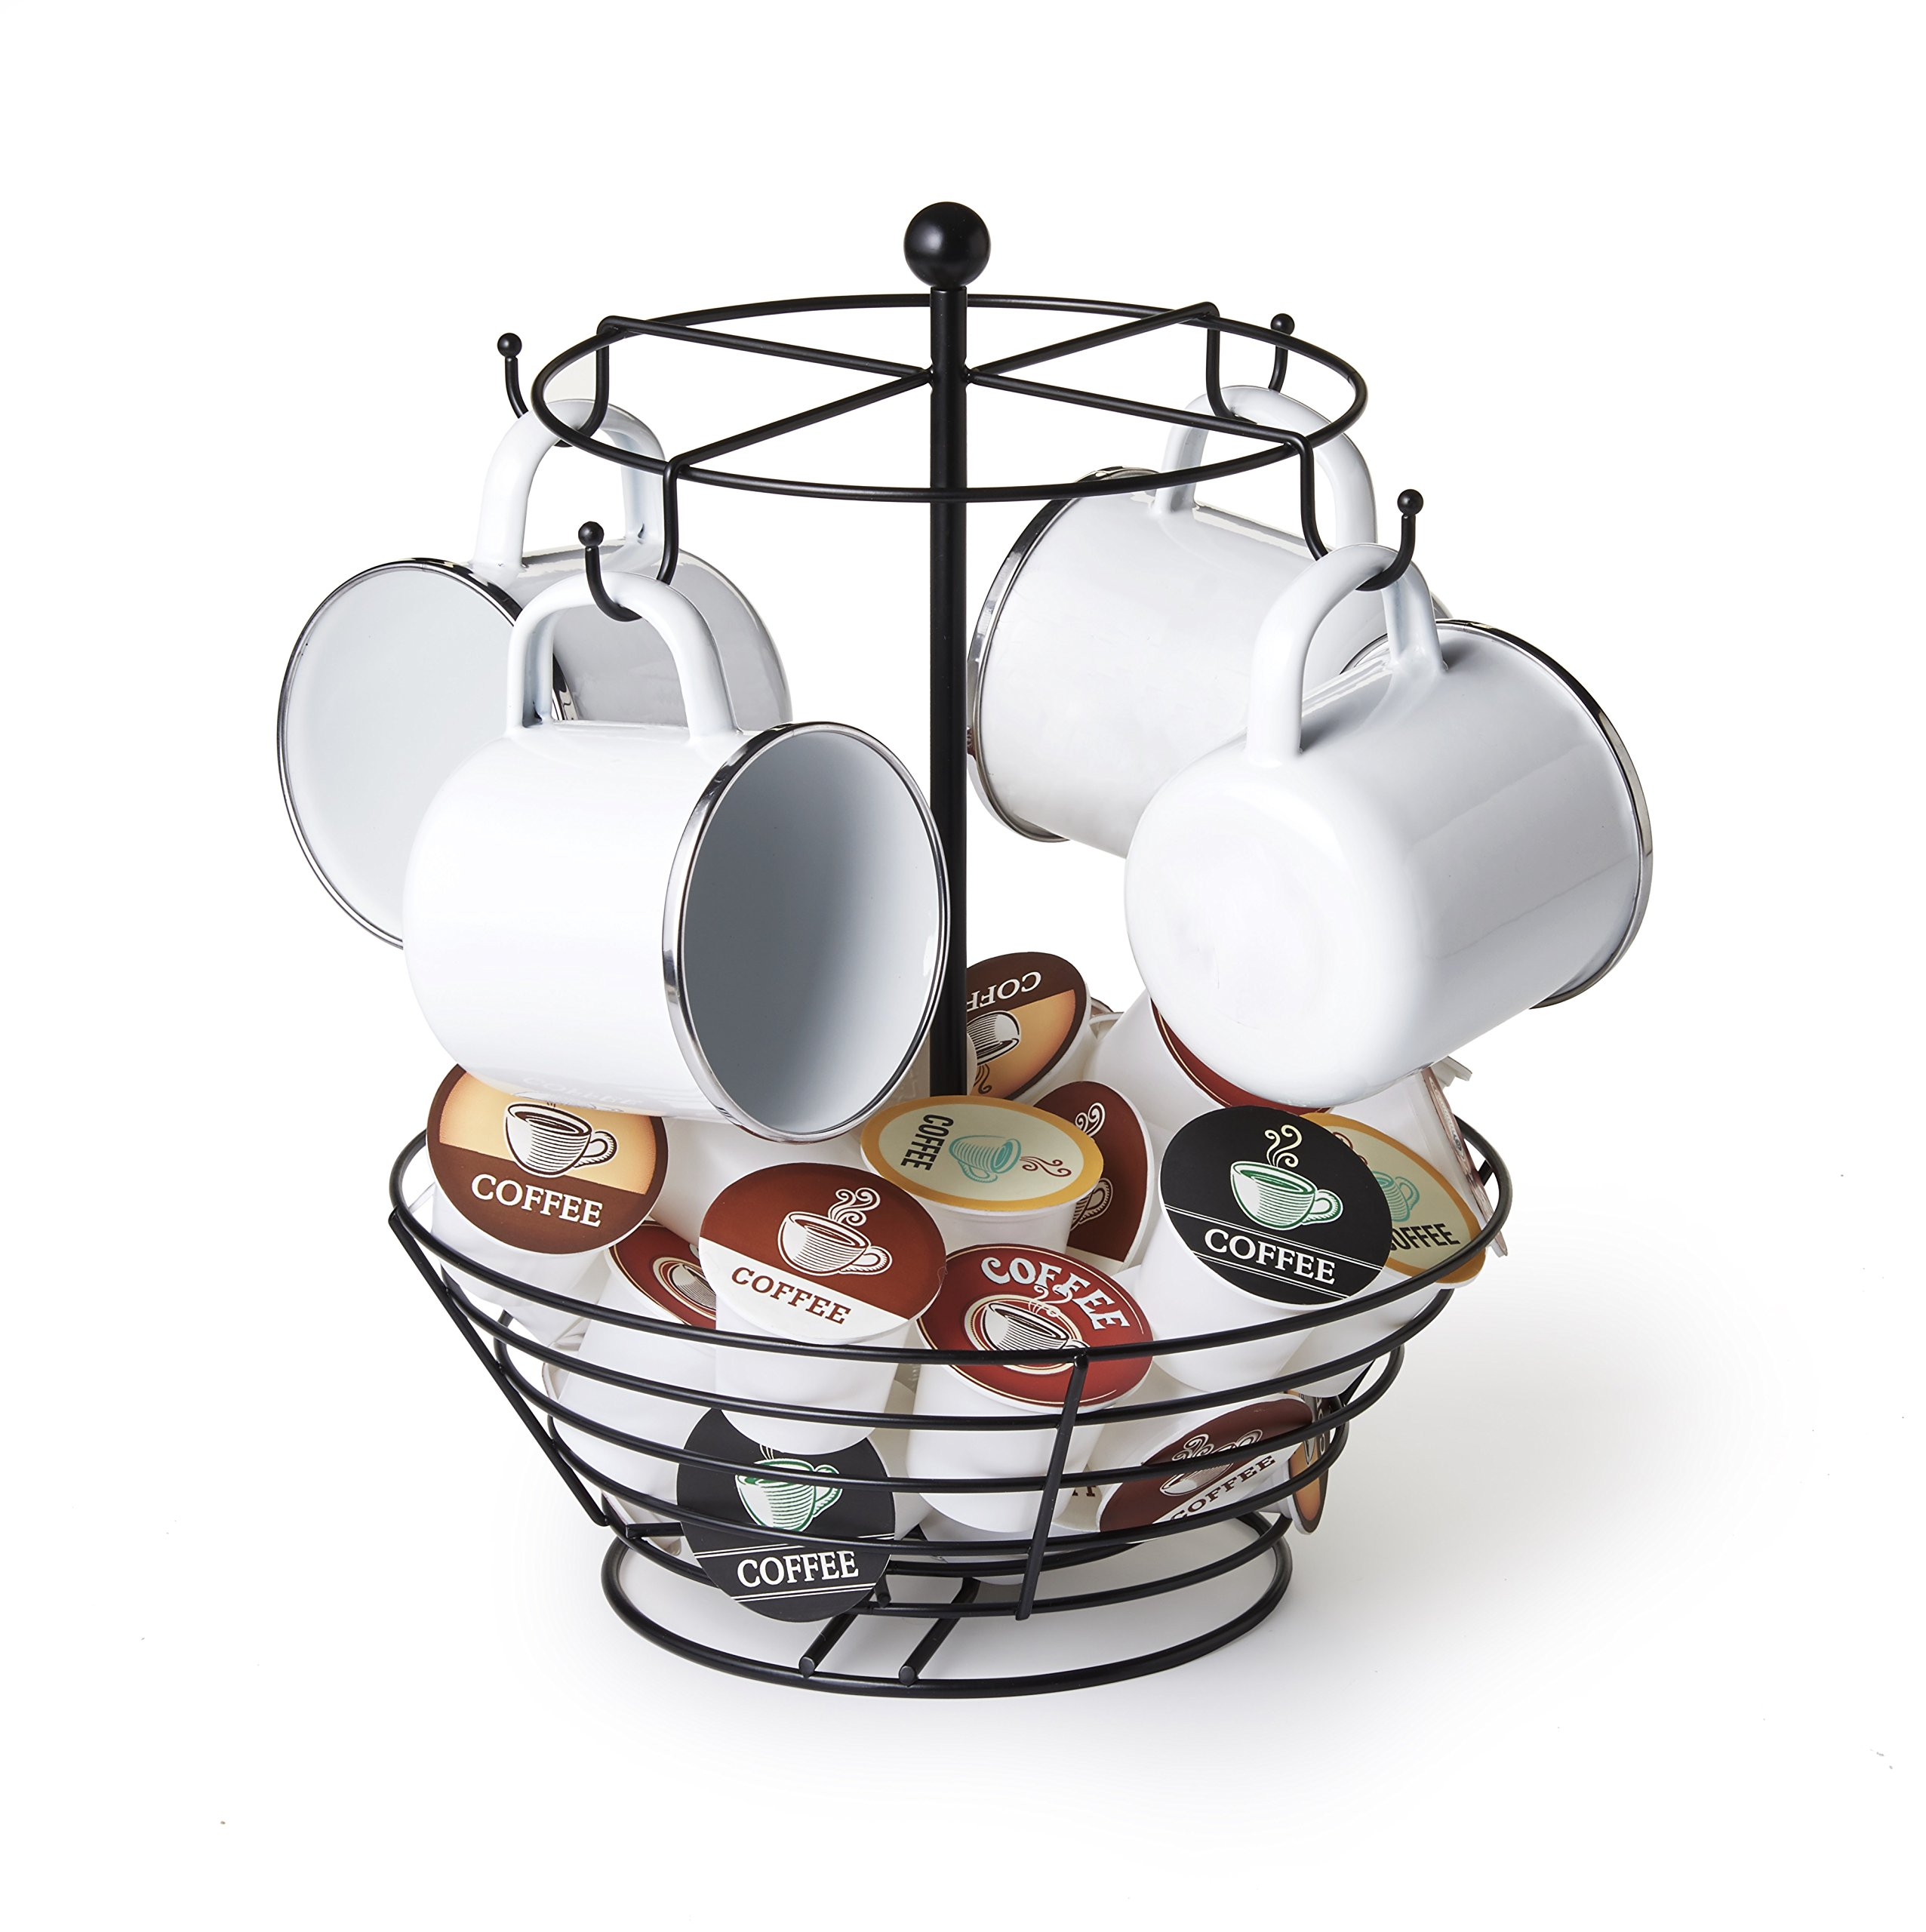 NIFTY 8830 Storage Basket Coffee Cup Carousel, One Size, Black by NIFTY